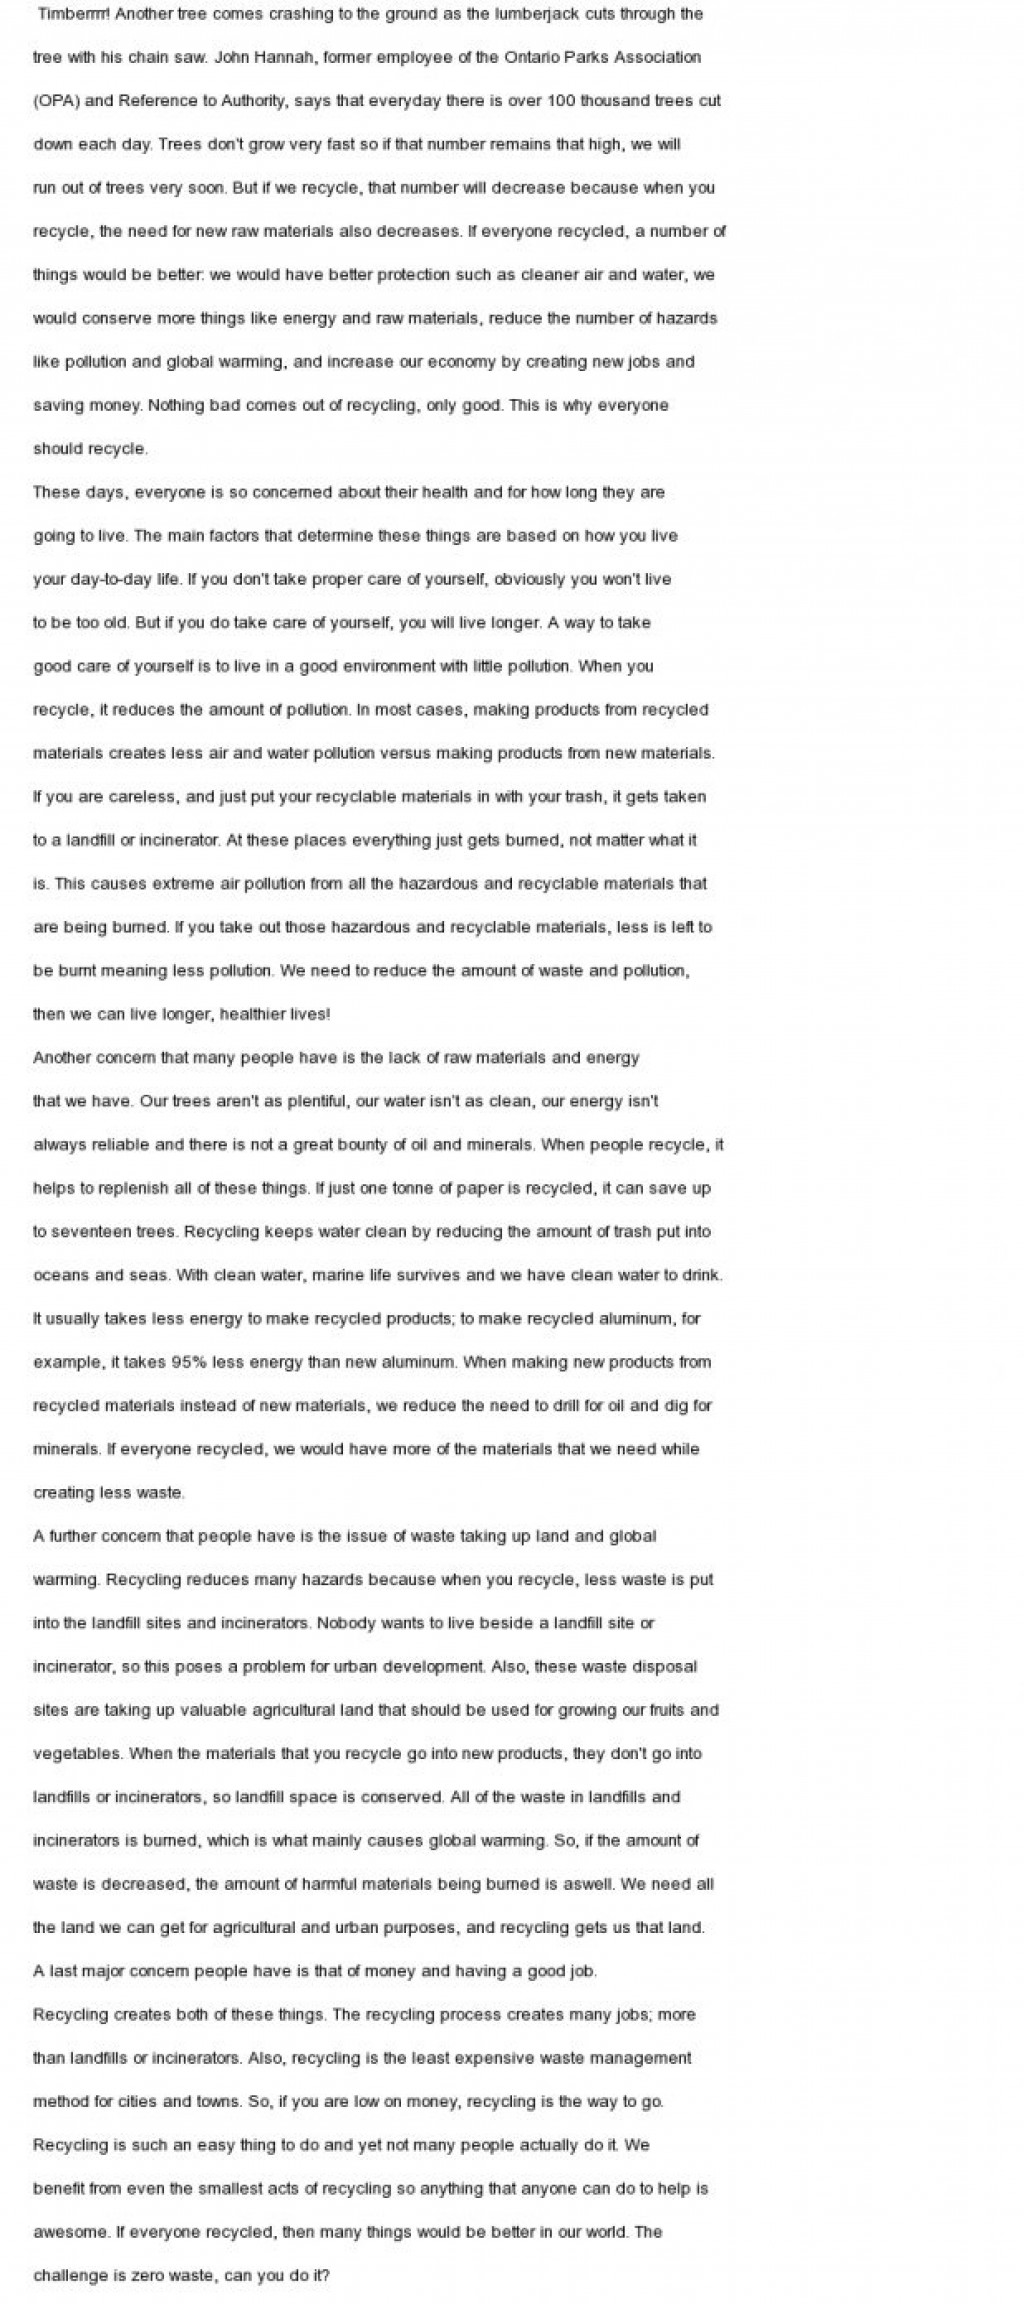 023 Essay How Can Protect Ouronment Take The Challenege Save Earth Ways To In Tamil Essays For Student Articles Conclusion Hindi Free Malayalam Persuasive Sinhala Short 618x1391 Example Stupendous Environmental Protection English Pdf Large